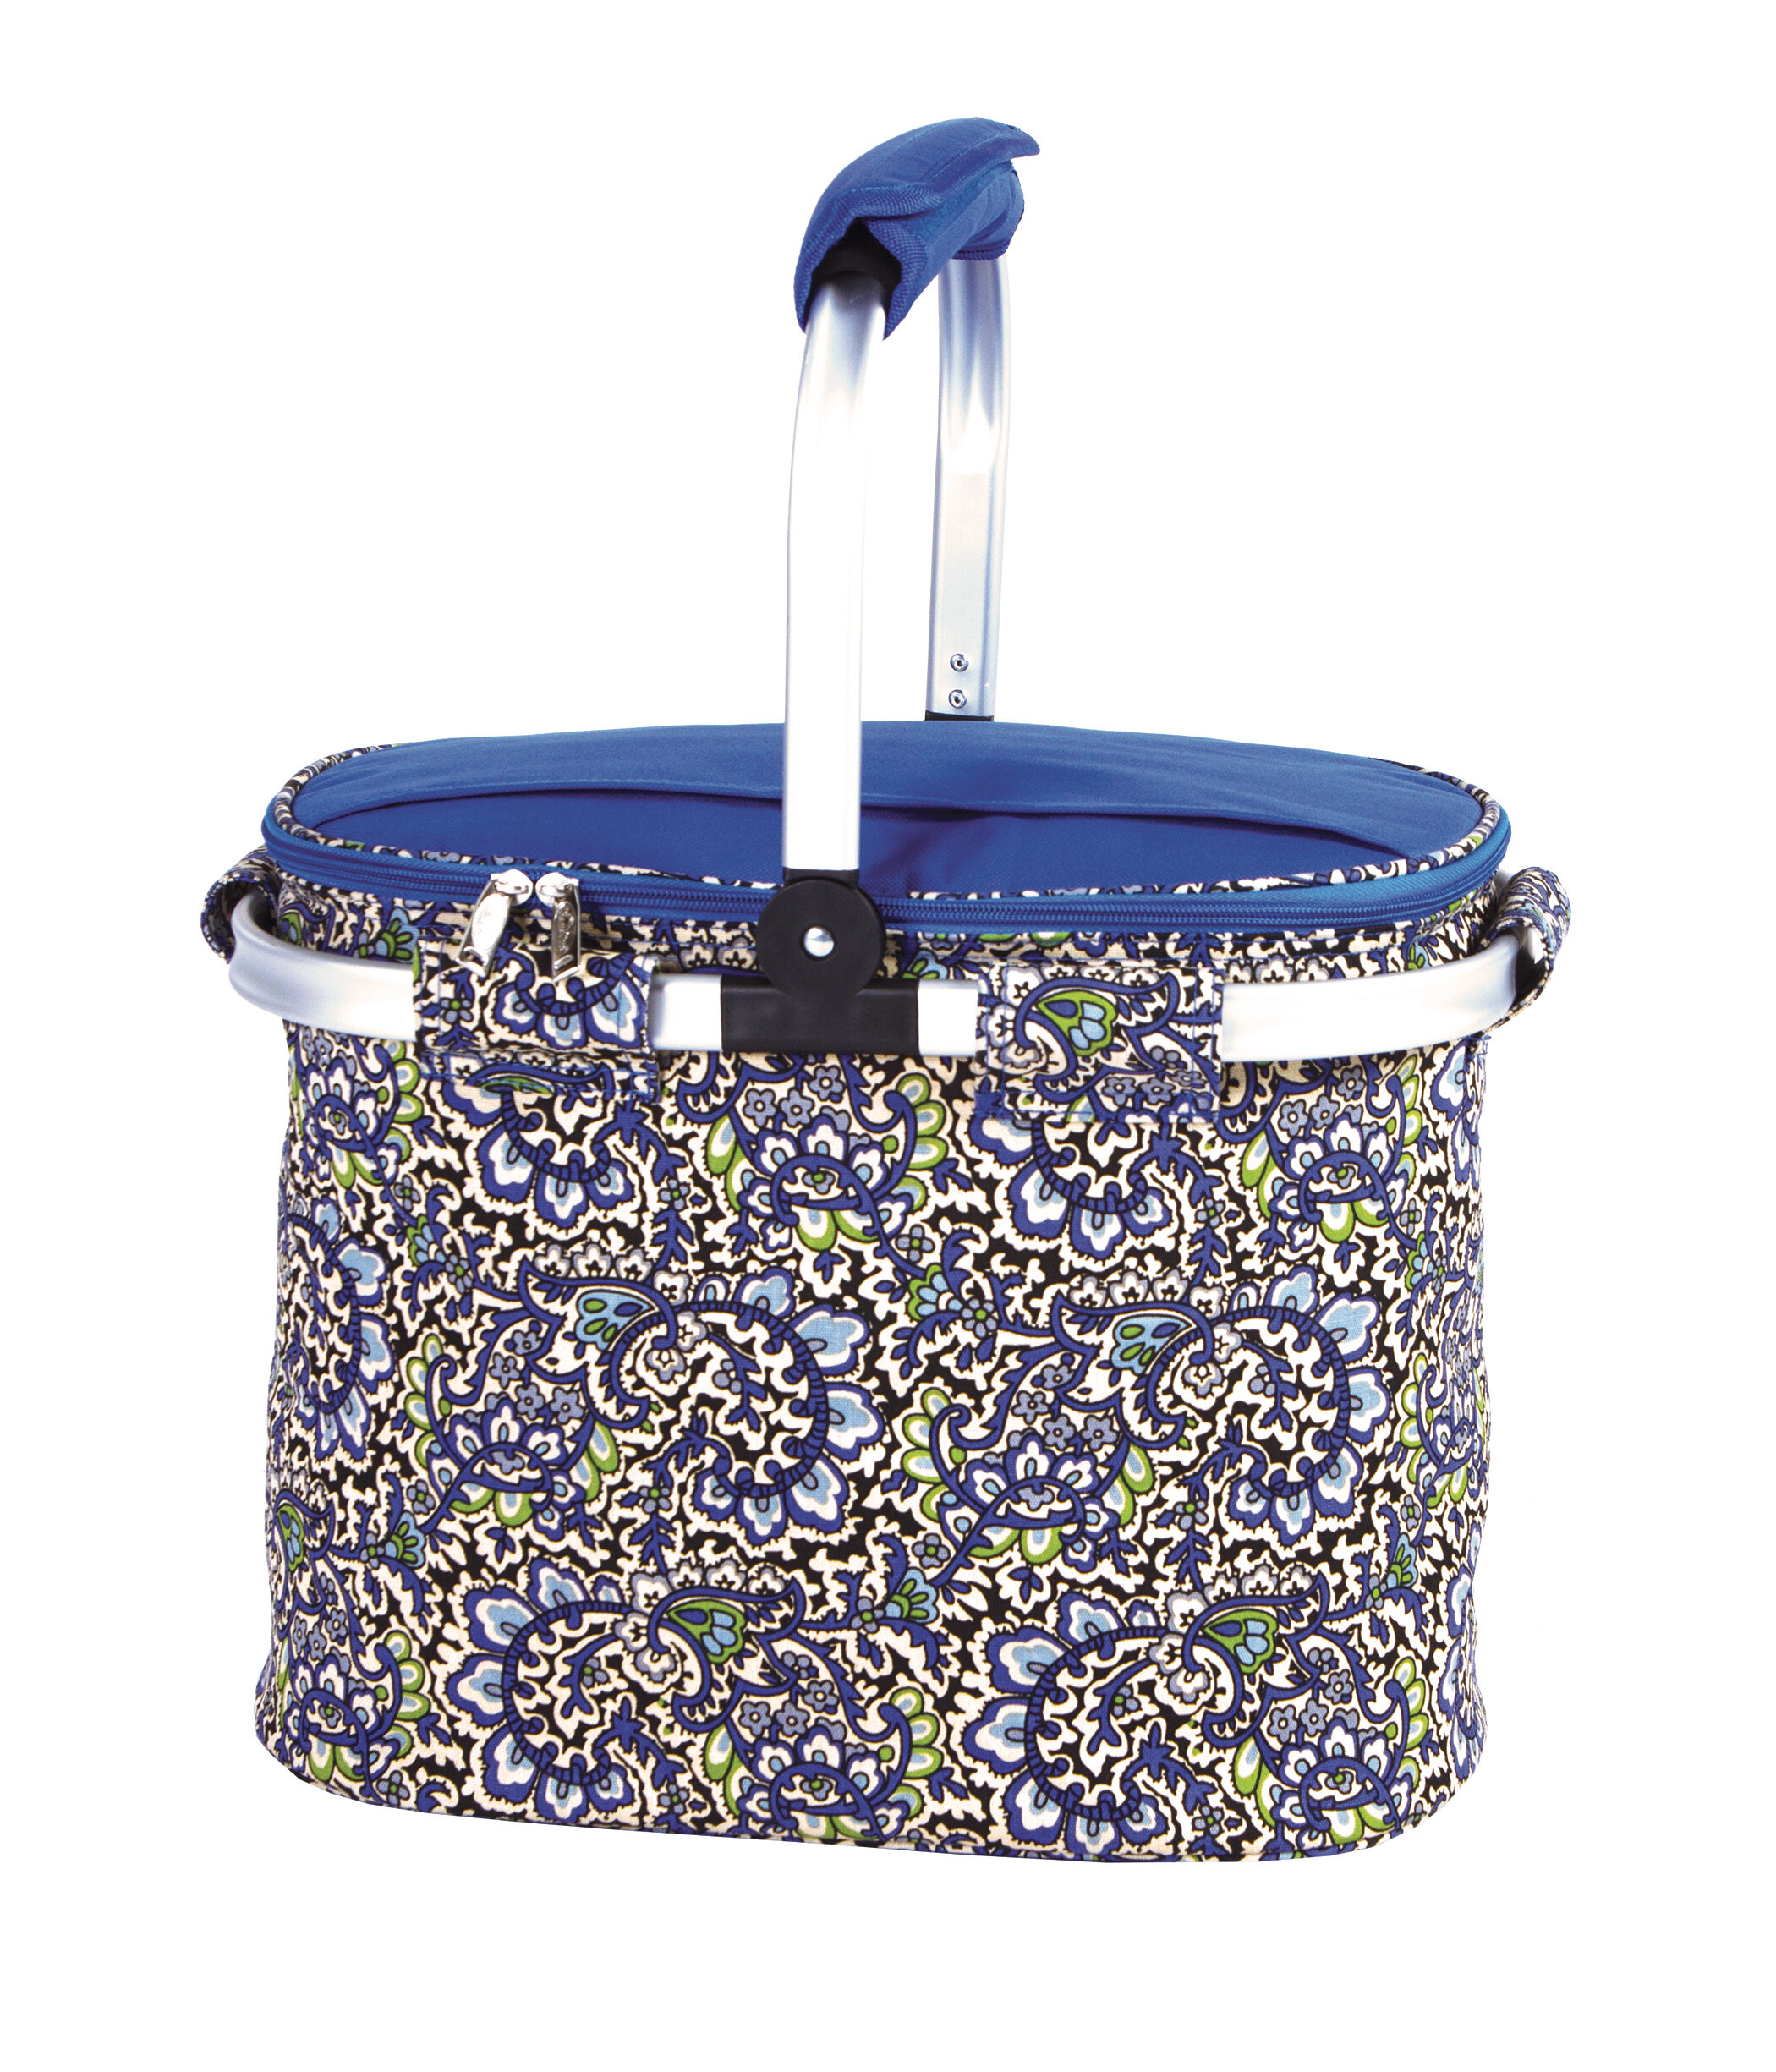 Picnic Plus By Spectrum Shelby Collapsible Thermal Foil Insulated Market Tote Picnic Cooler Wayfair